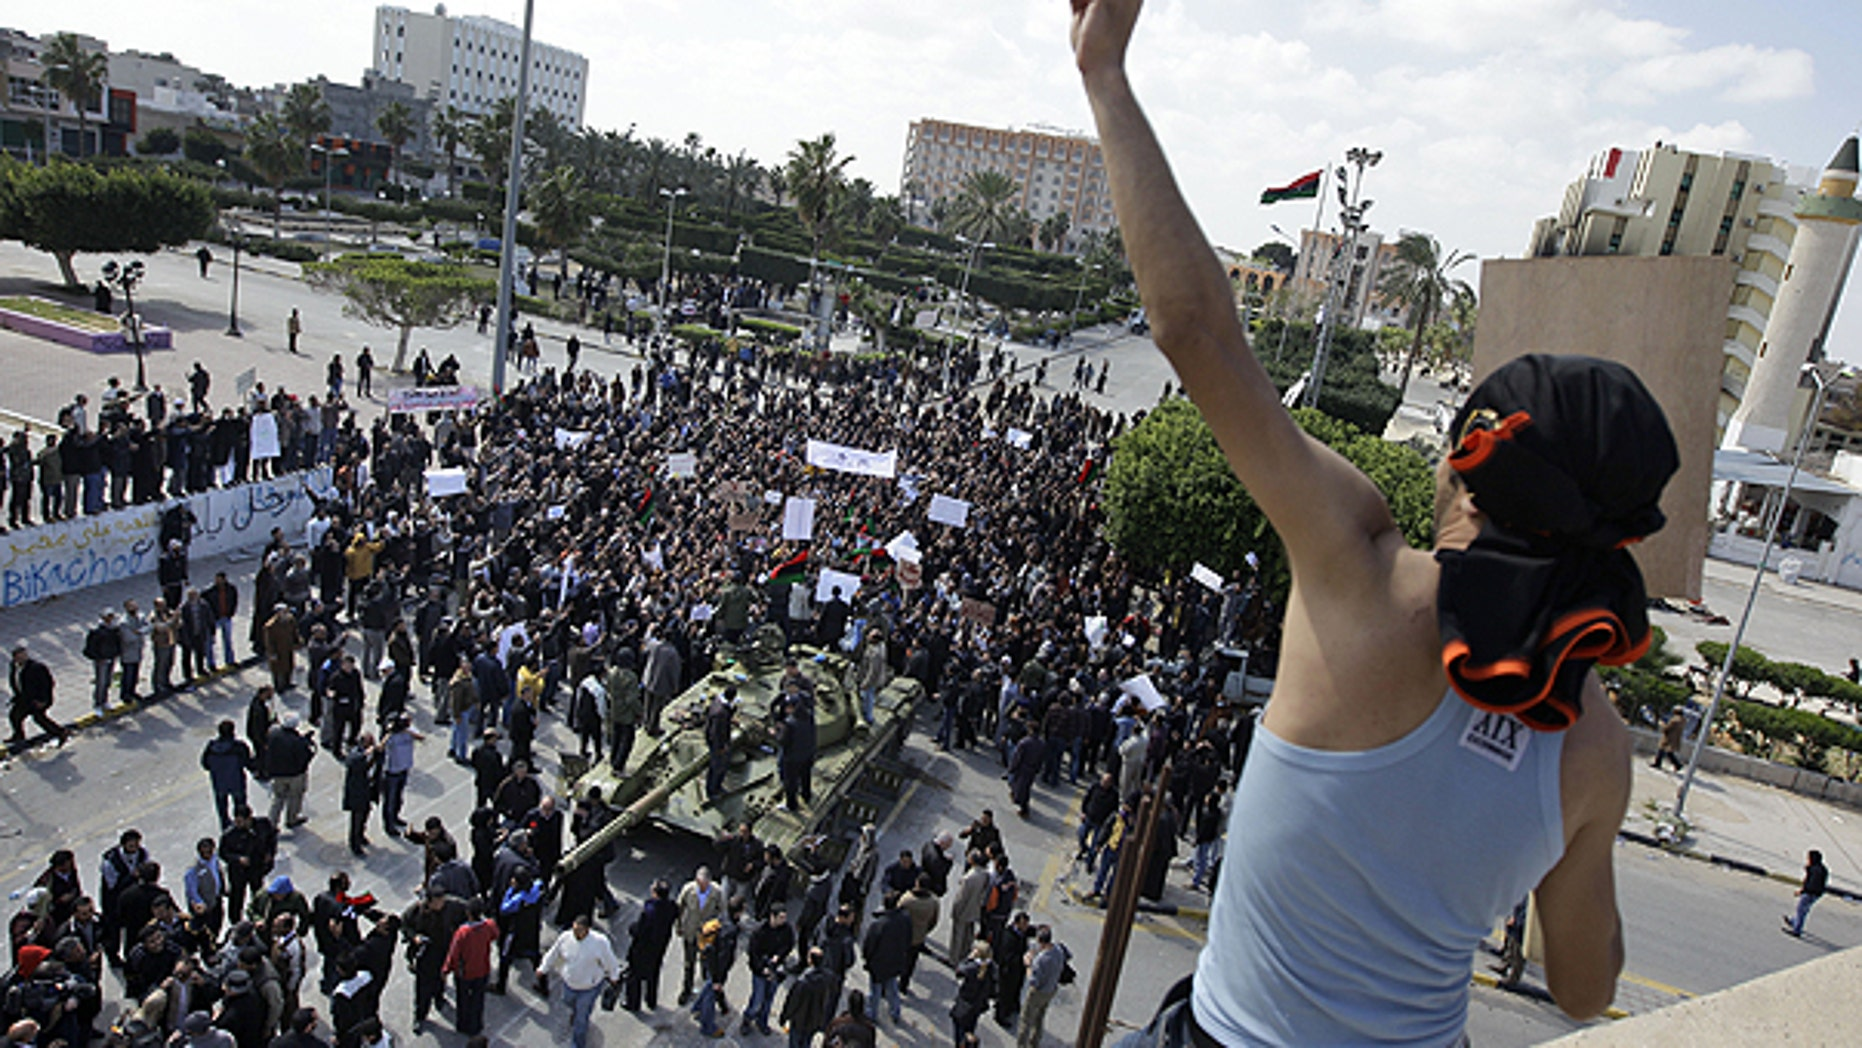 Feb. 27: Residents gather around a tank and an armed man on a rooftop flashes the victory sign, as foreign journalists arrive in Zawiya, 30 miles west of Tripoli, in Libya.